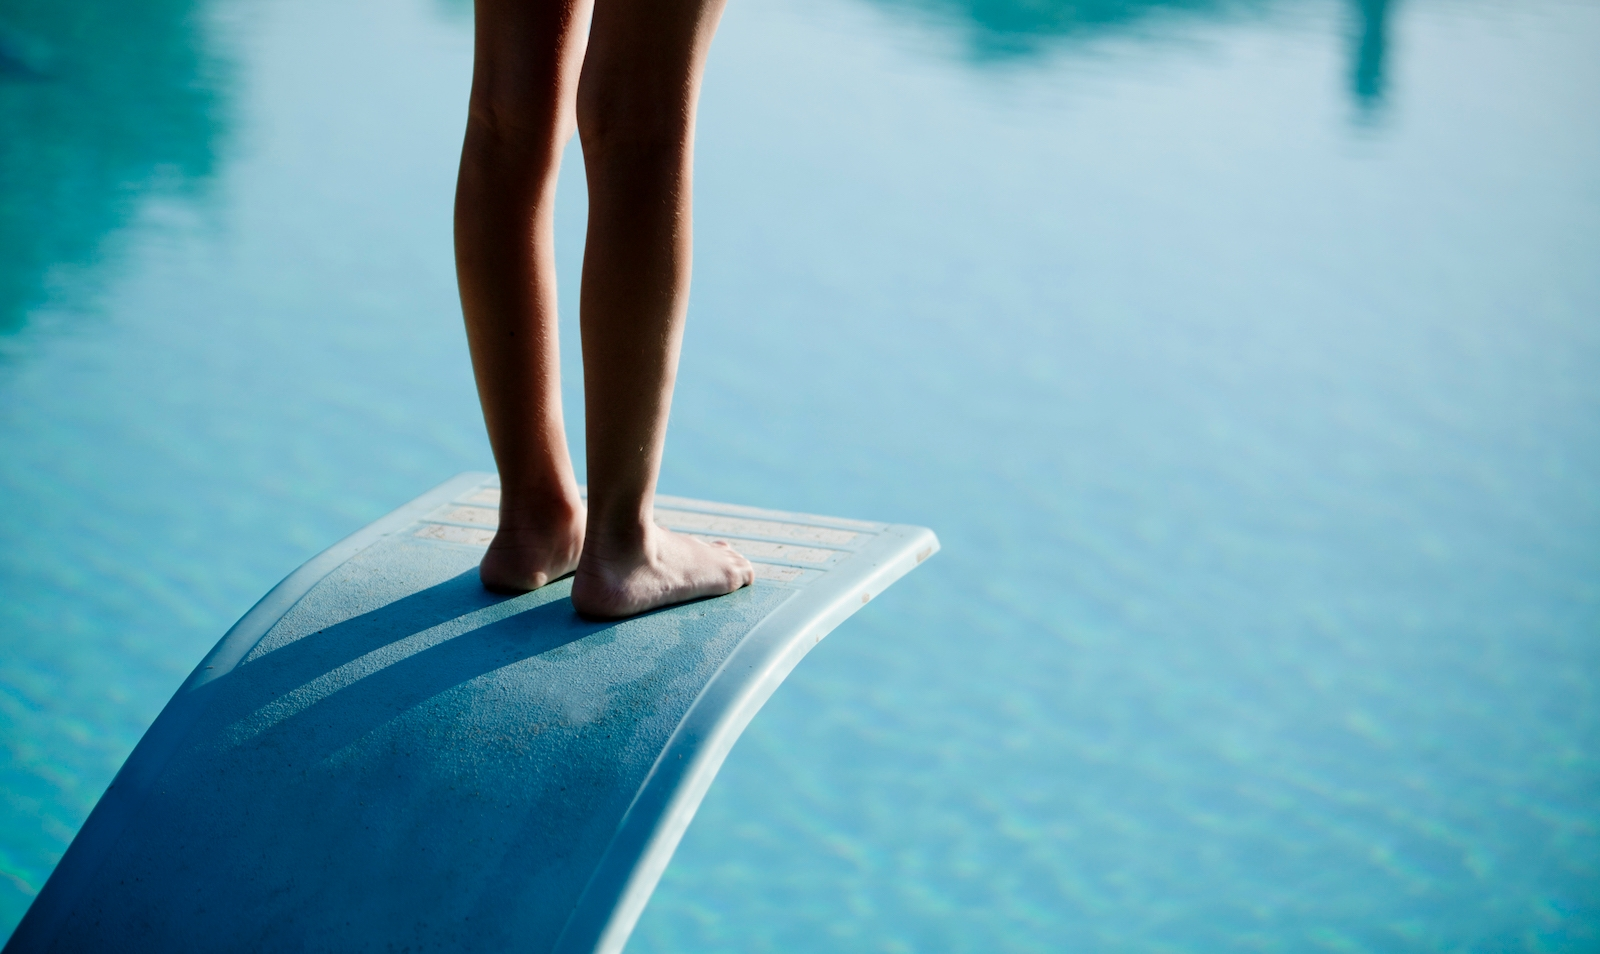 Shot of bare legs on diving board above blue water